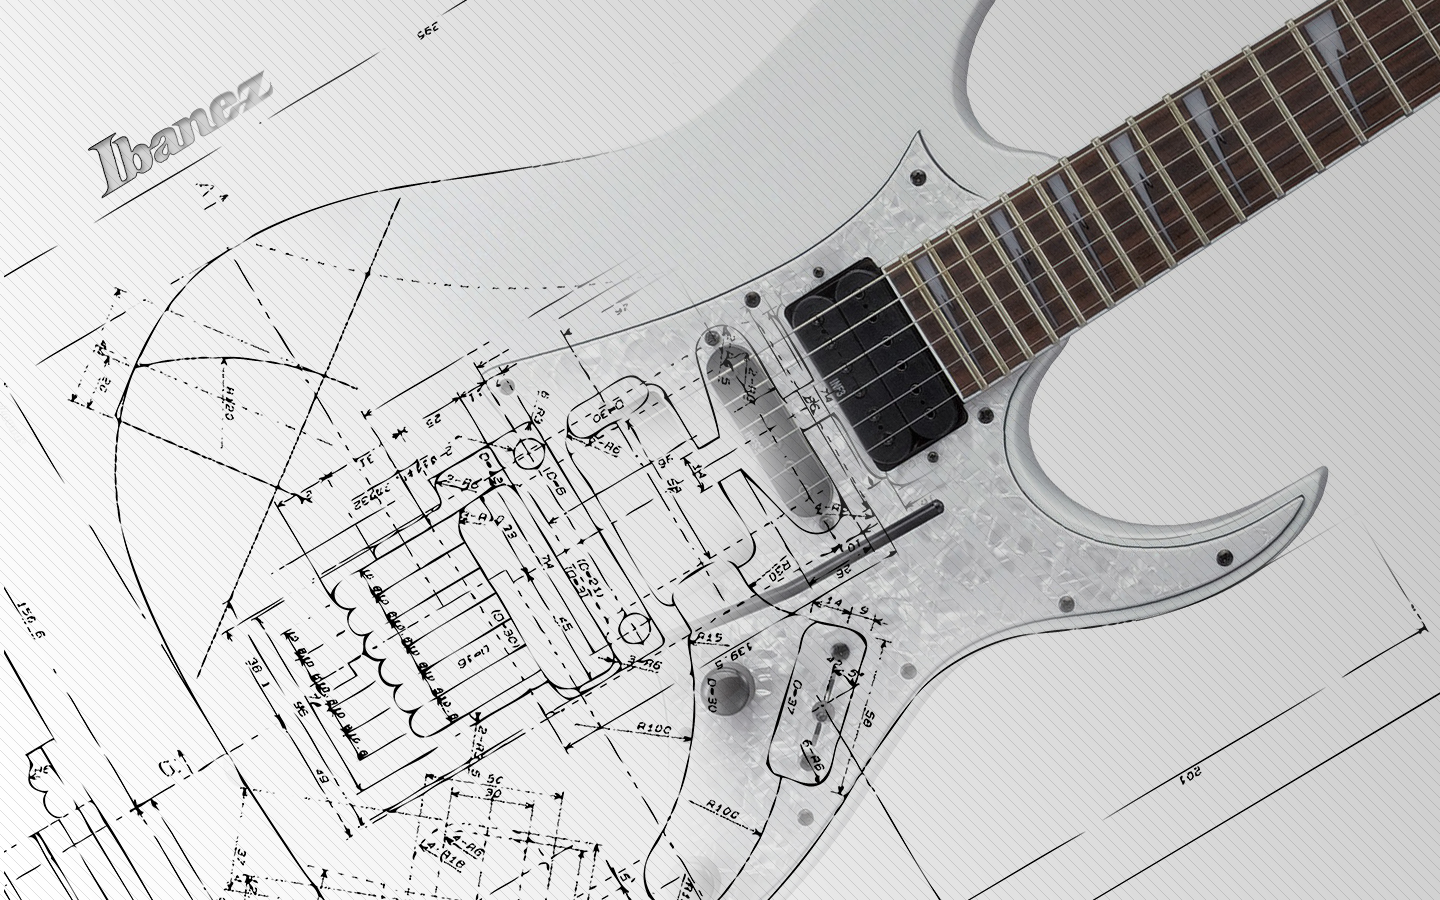 Guitar wallpaper ibanez white electric guitar blueprint 1440x900